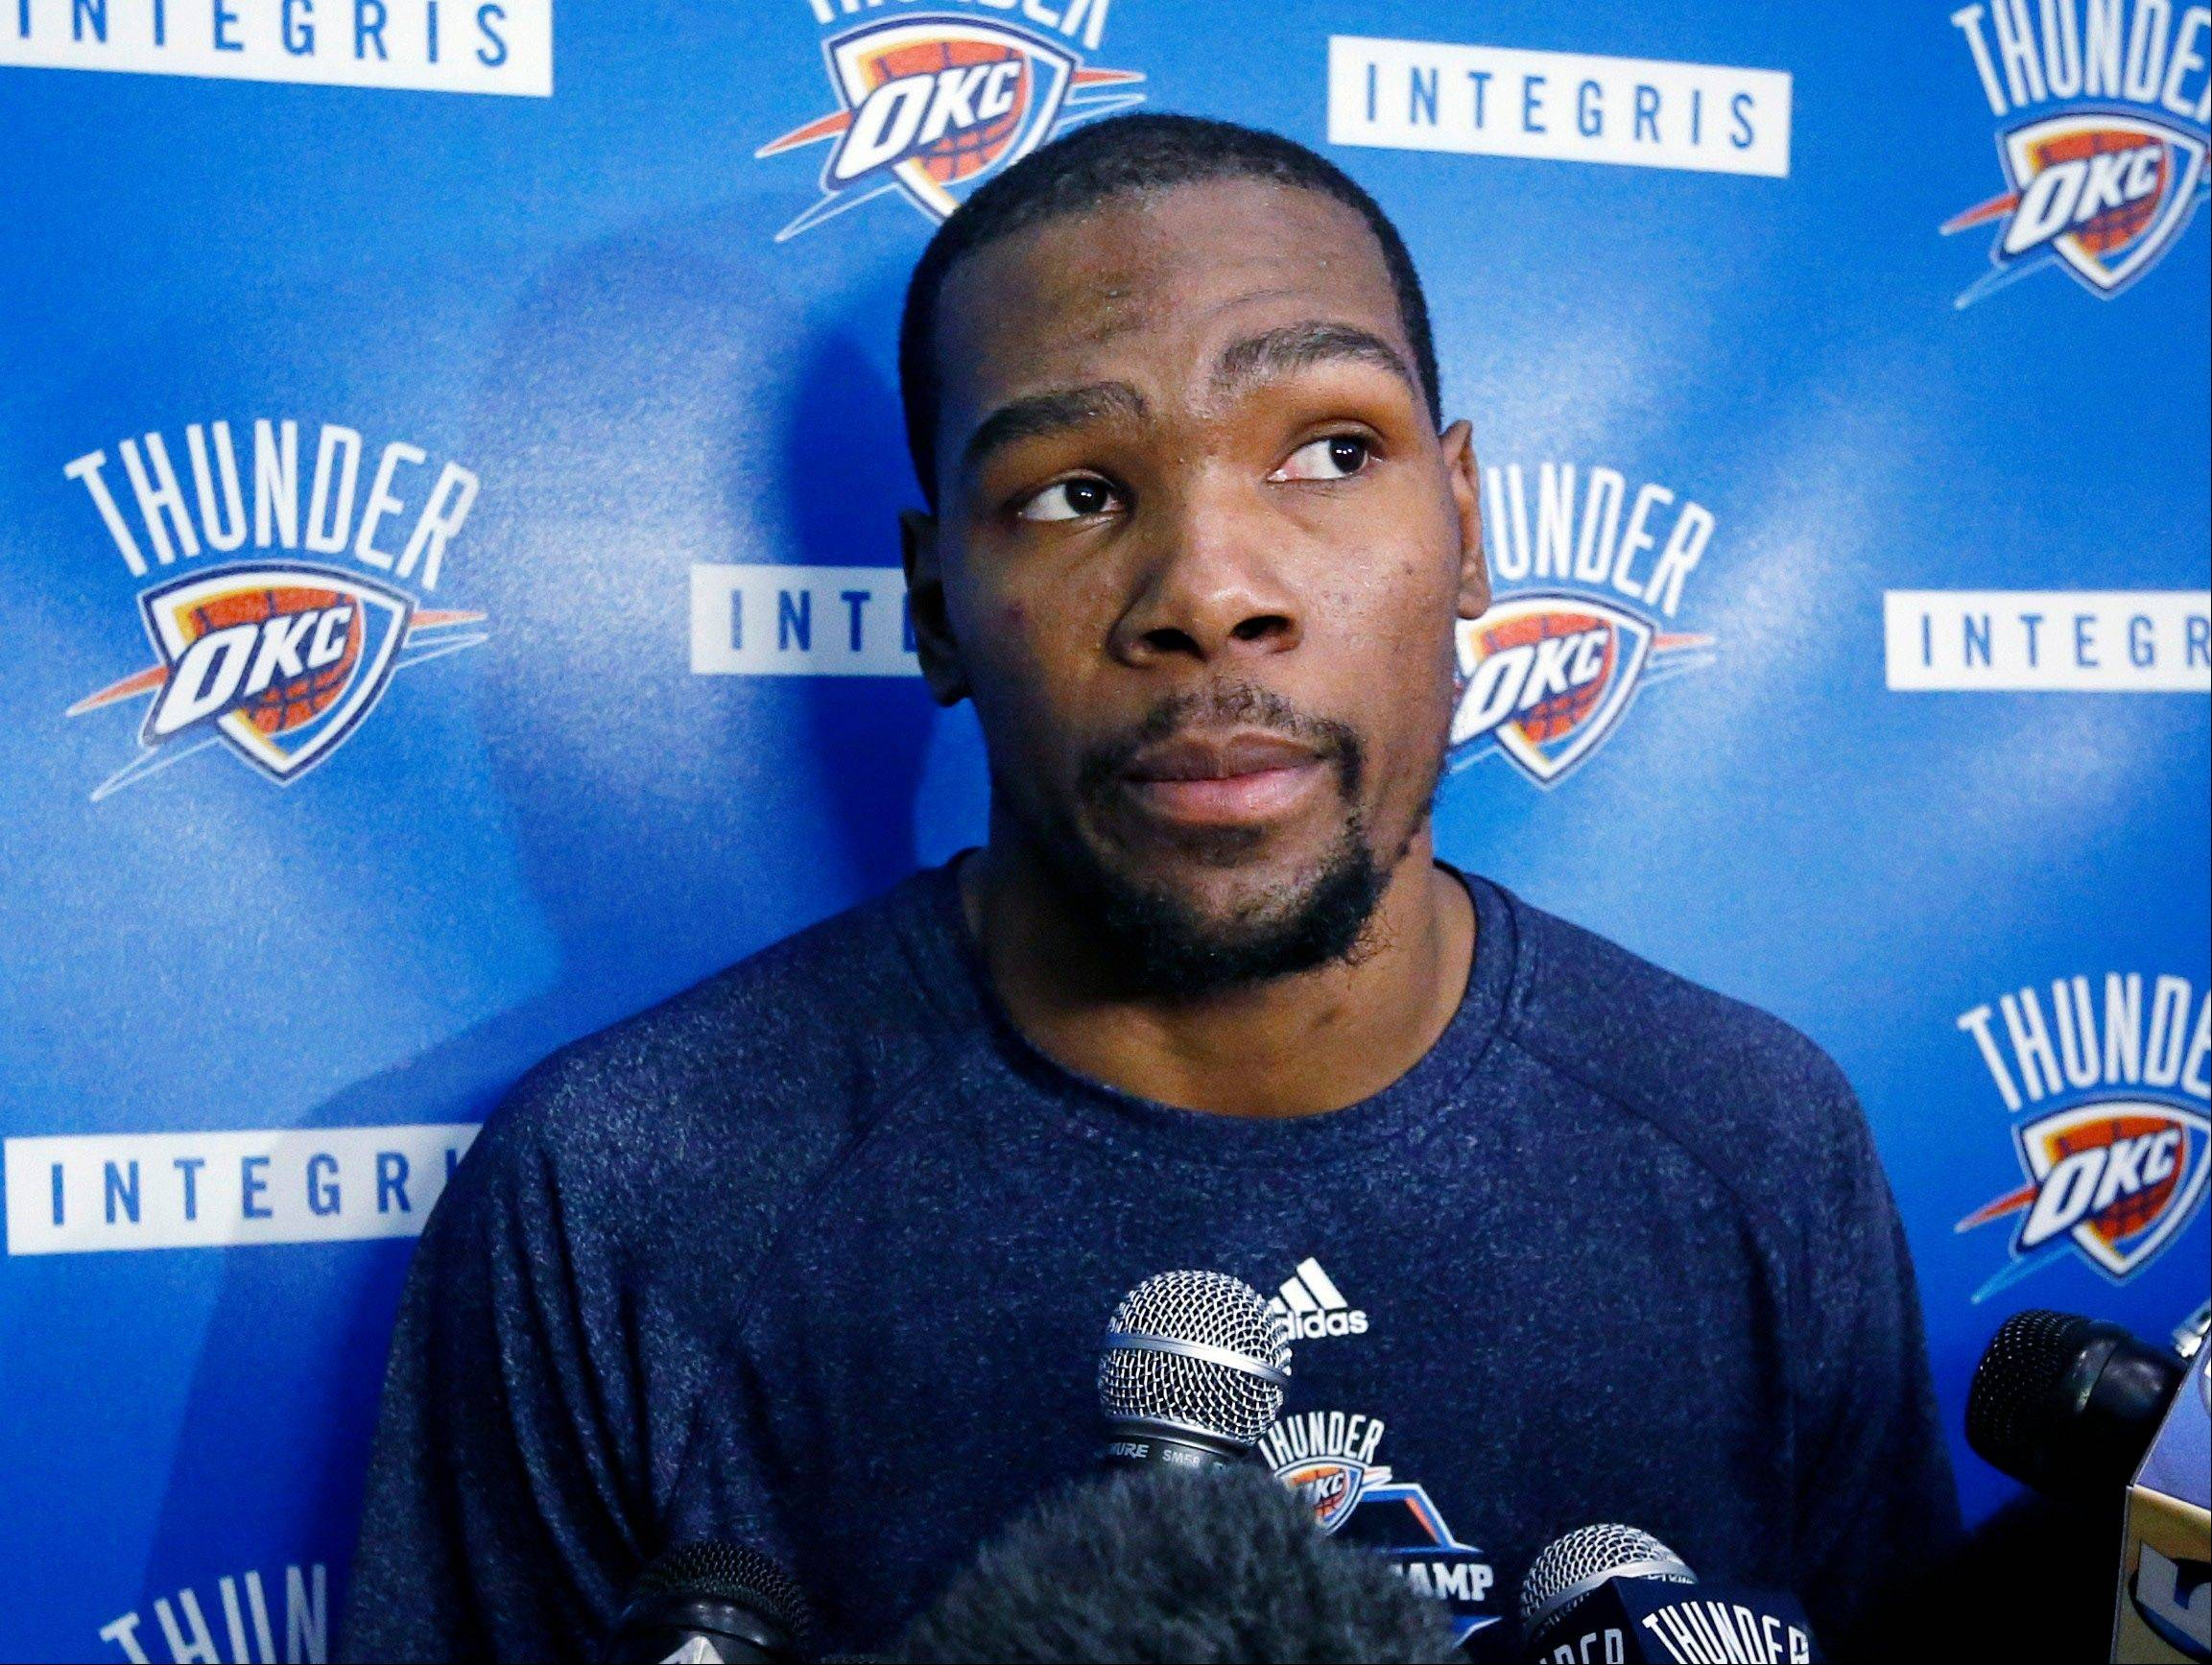 Oklahoma City Thunder forward Kevin Durant answers a question during a news conference at NBA basketball practice in Oklahoma City, Friday, April 26, 2013. All-Star point guard Russell Westbrook will have surgery to repair cartilage in his right knee and be out indefinitely, dealing a harsh blow to the Thunder's championship chances. (AP Photo/Sue Ogrocki)